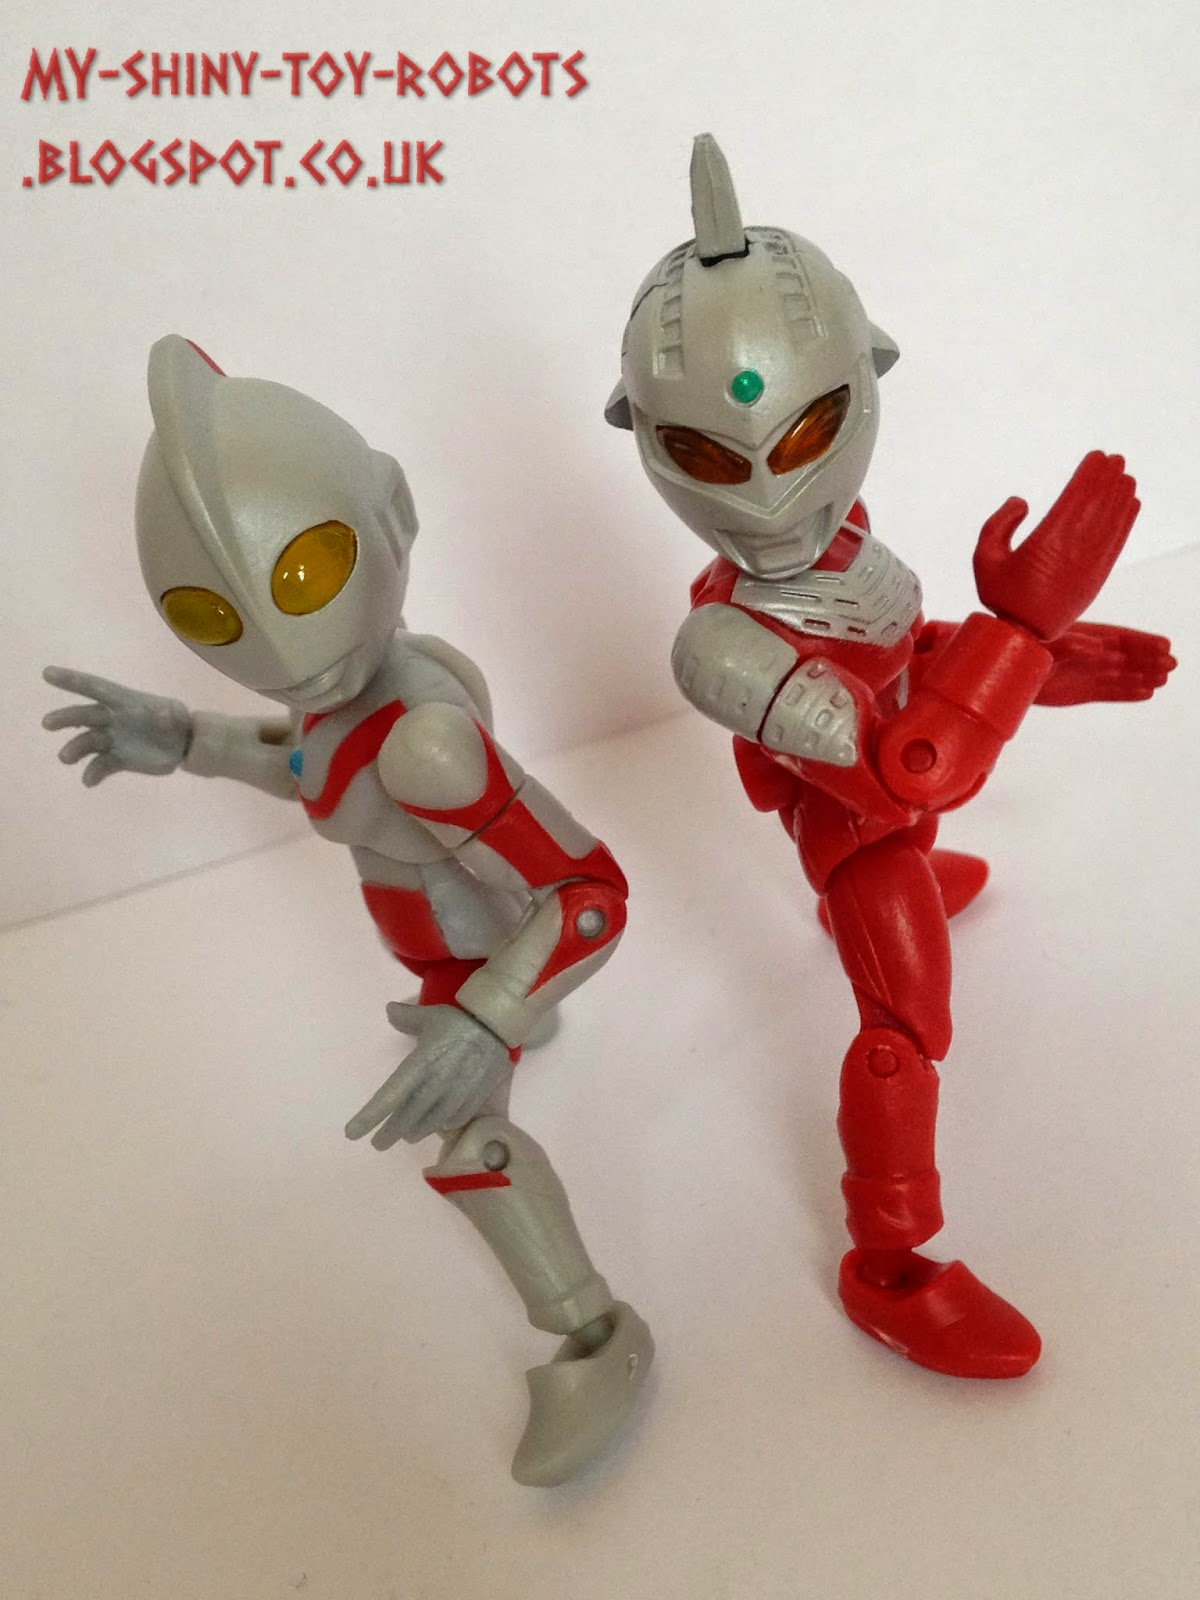 Teaming up with Ultraman